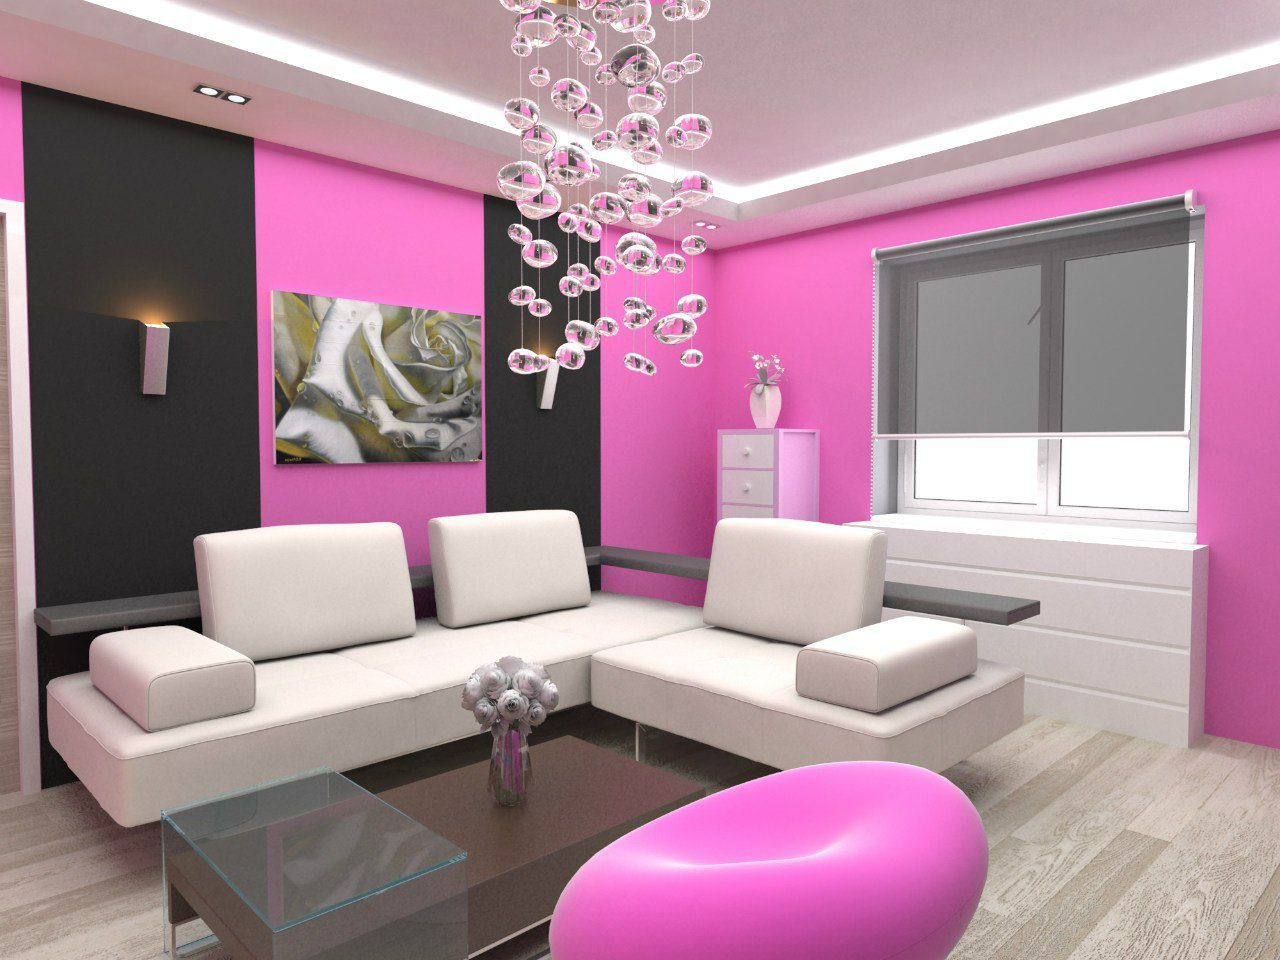 Paint colors for bedrooms pink - Pretty Living Room Paint Idea With Pink And Black Painted Wall And White L Shaped